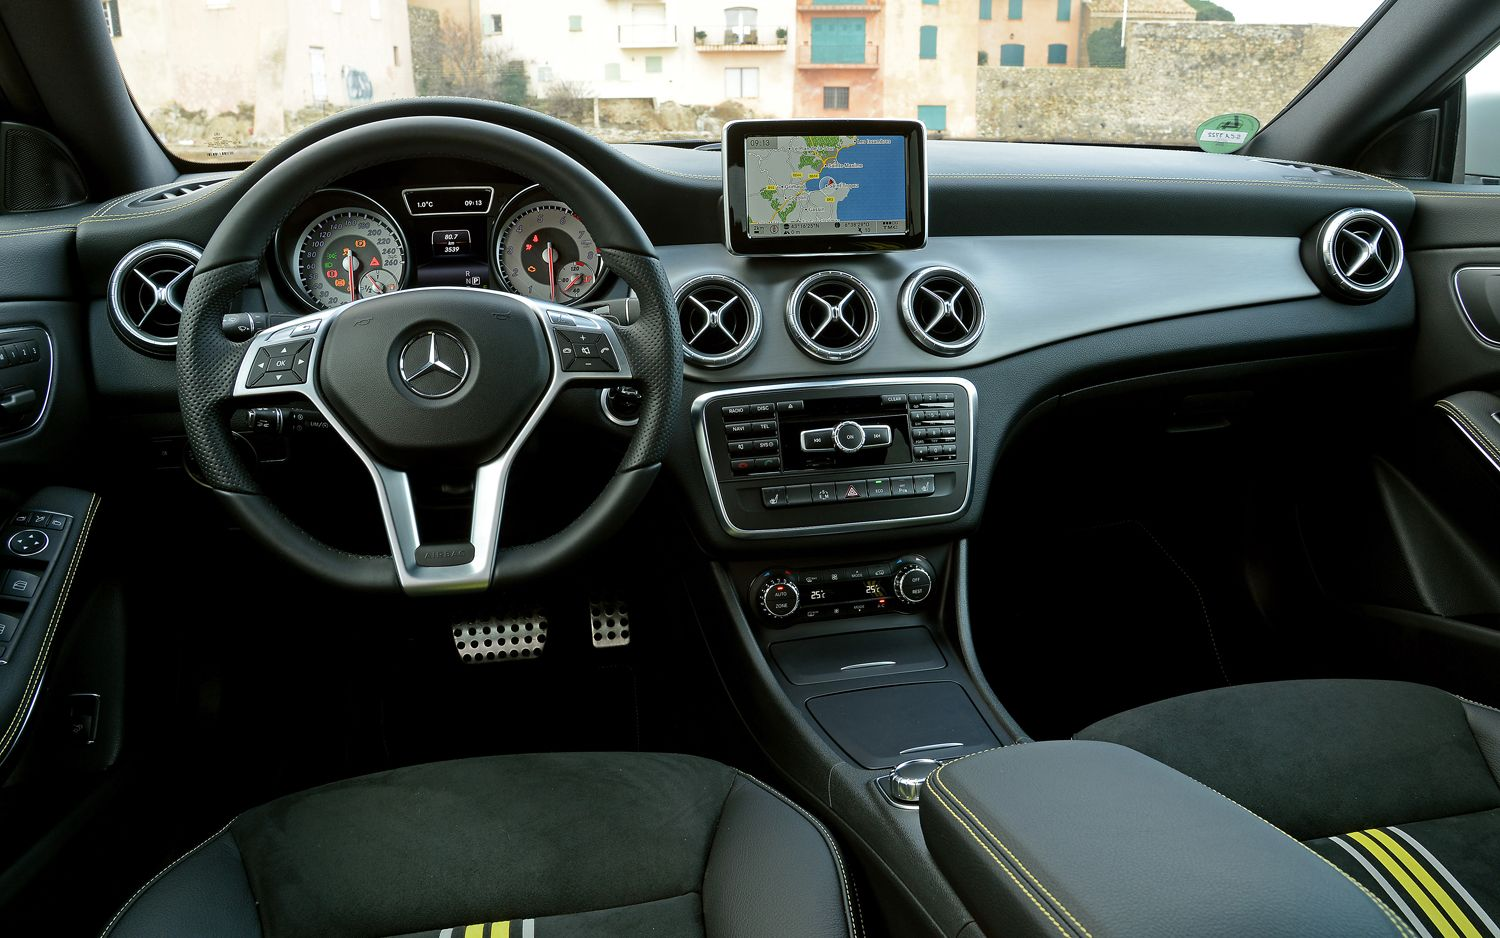 Miraculous 2014 Mercedes Benz Cla250 First Drive L U X U R Y Download Free Architecture Designs Scobabritishbridgeorg